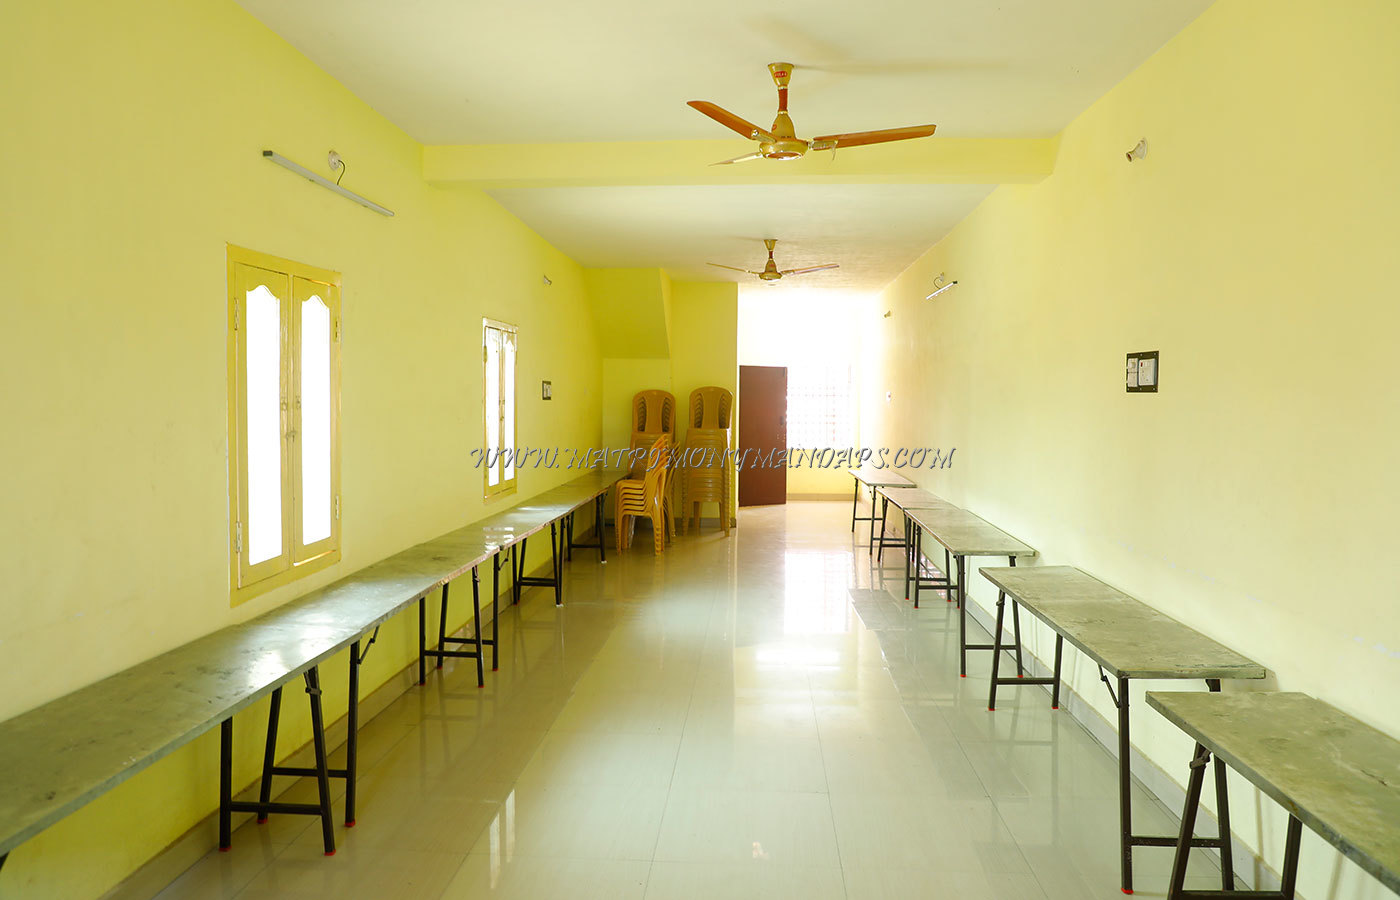 Find the availability of the Sri Sai Mini Mahal (A/C) in Ellis Nagar, Madurai and avail special offers